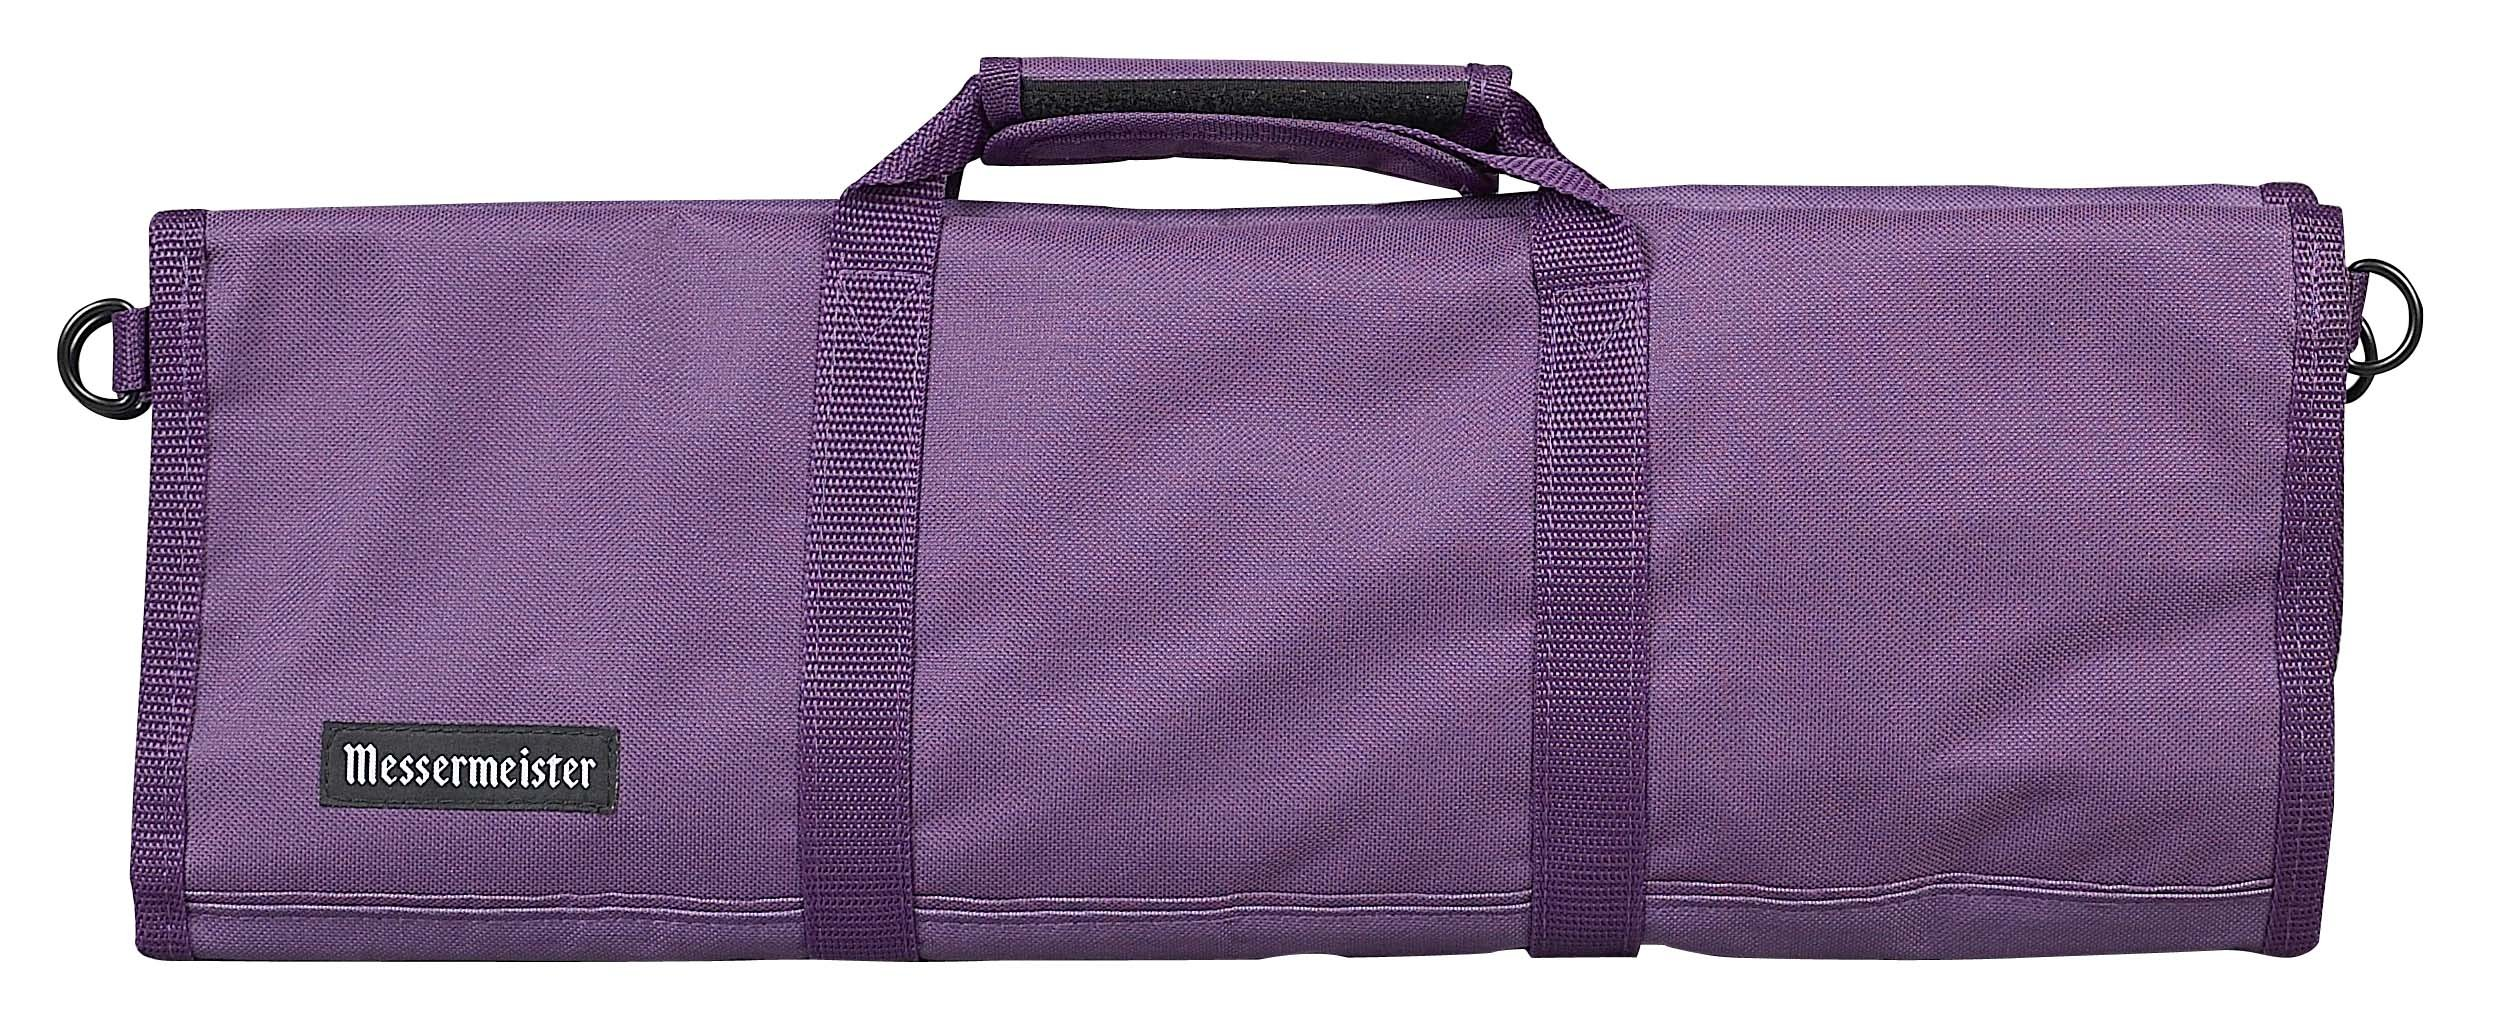 Messermeister 12-Pocket Heavy Duty Nylon Padded Knife Roll, Luggage Grade and Water Resistant, Plum by Messermeister